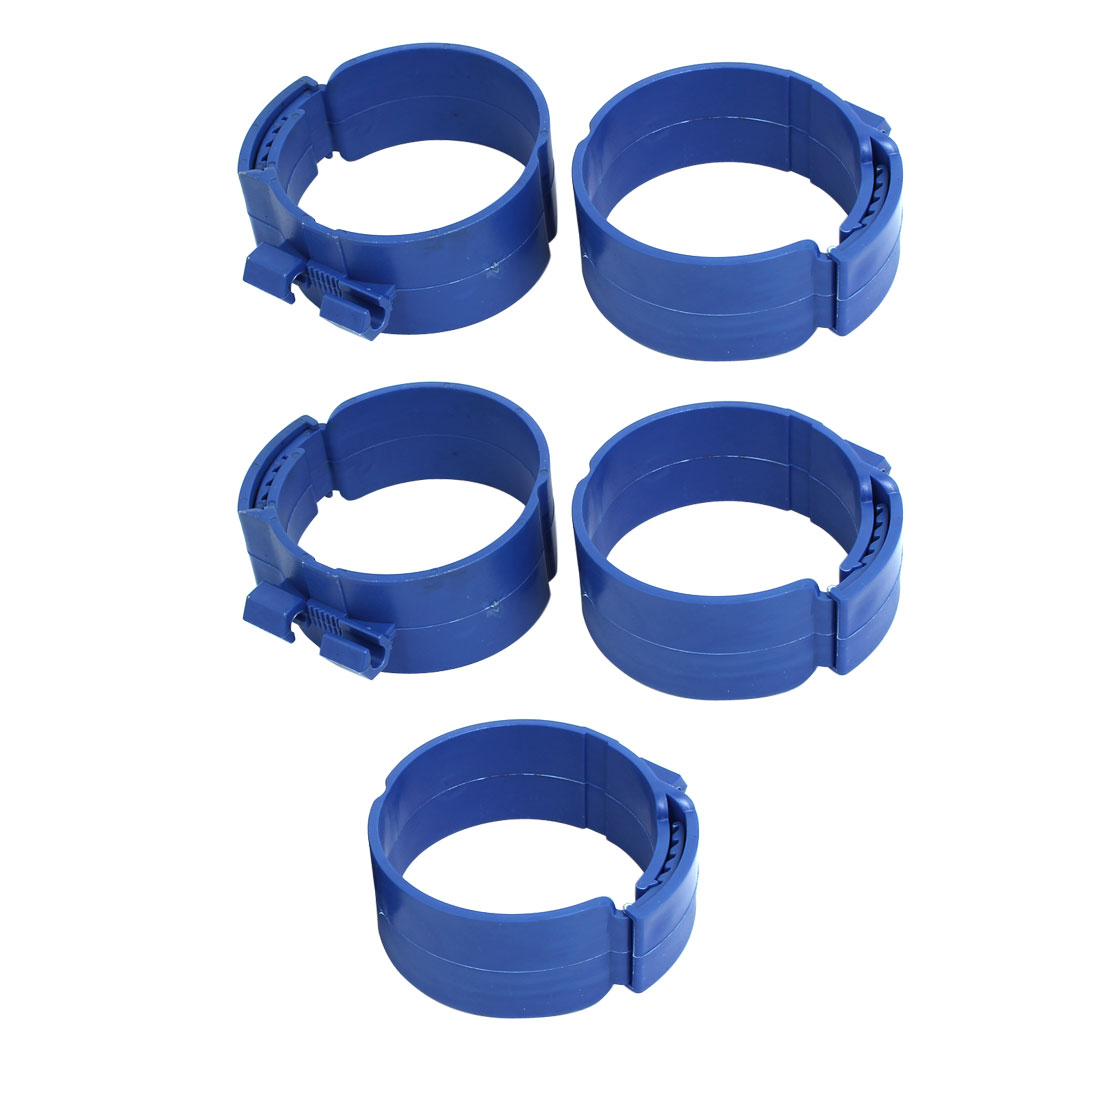 90mm Dia 38mm Width Central Air Conditioner Pipe Clip Clamp Blue 5pcs